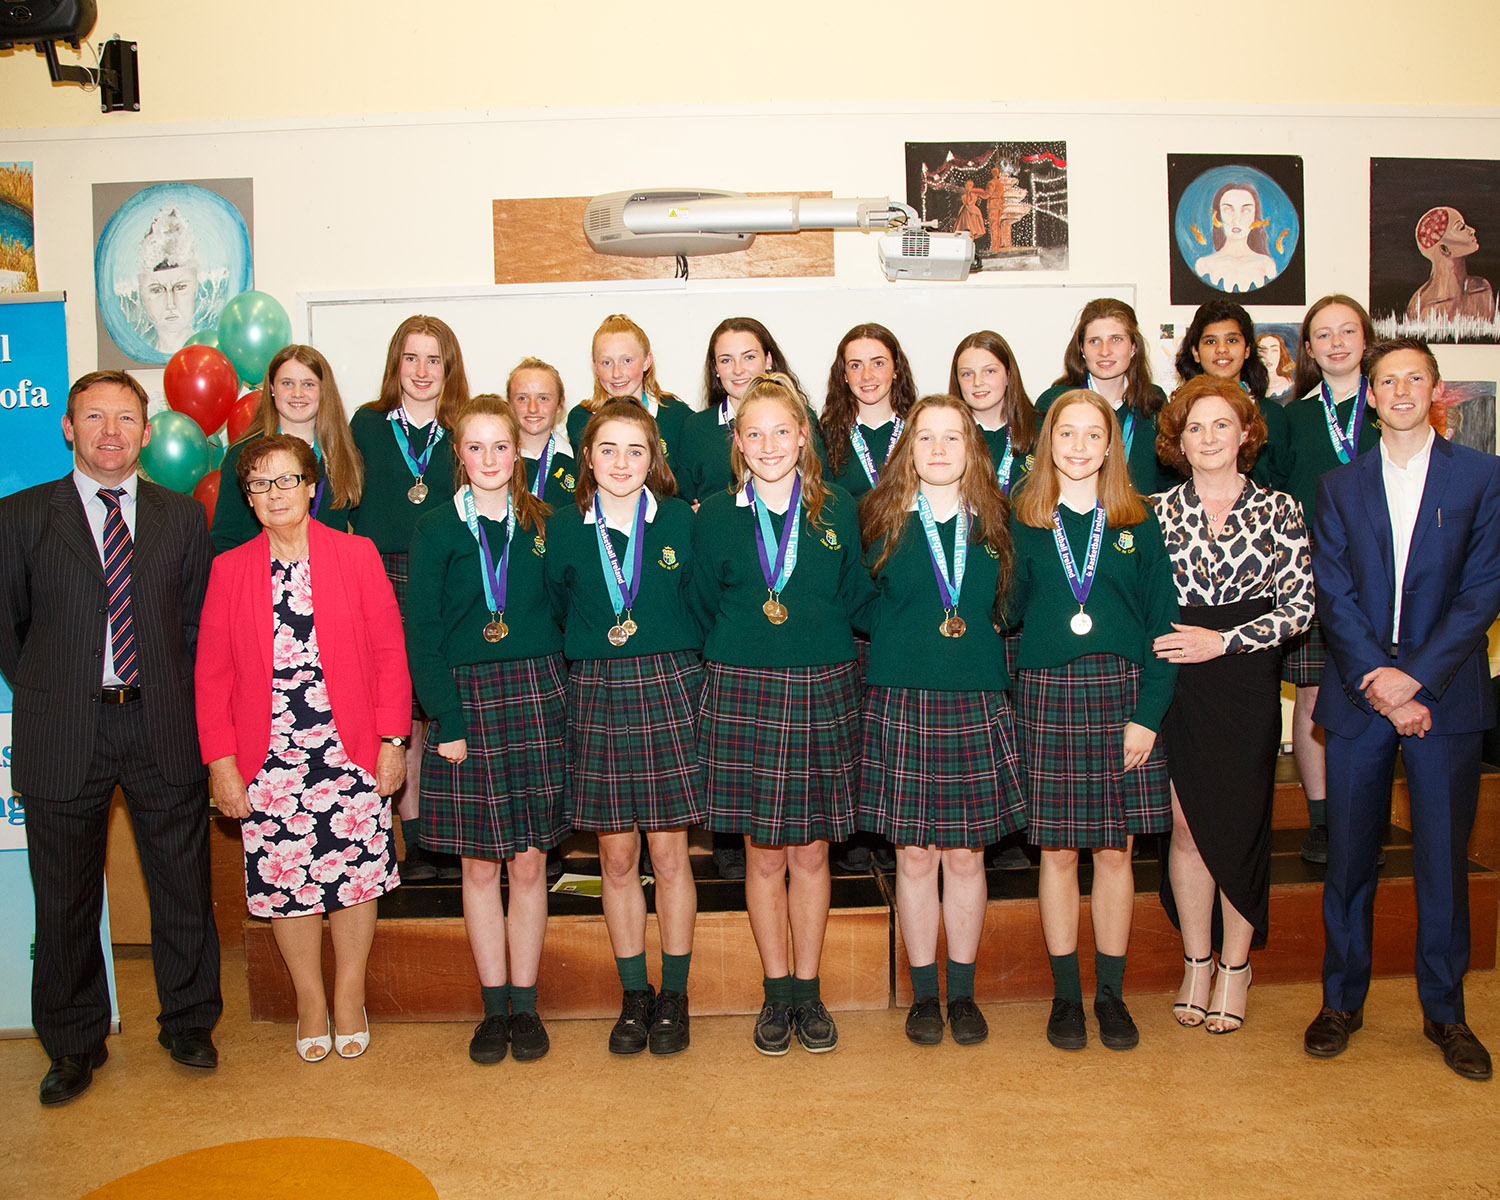 2nd year Basket ball team who reached the All Ireland Finals